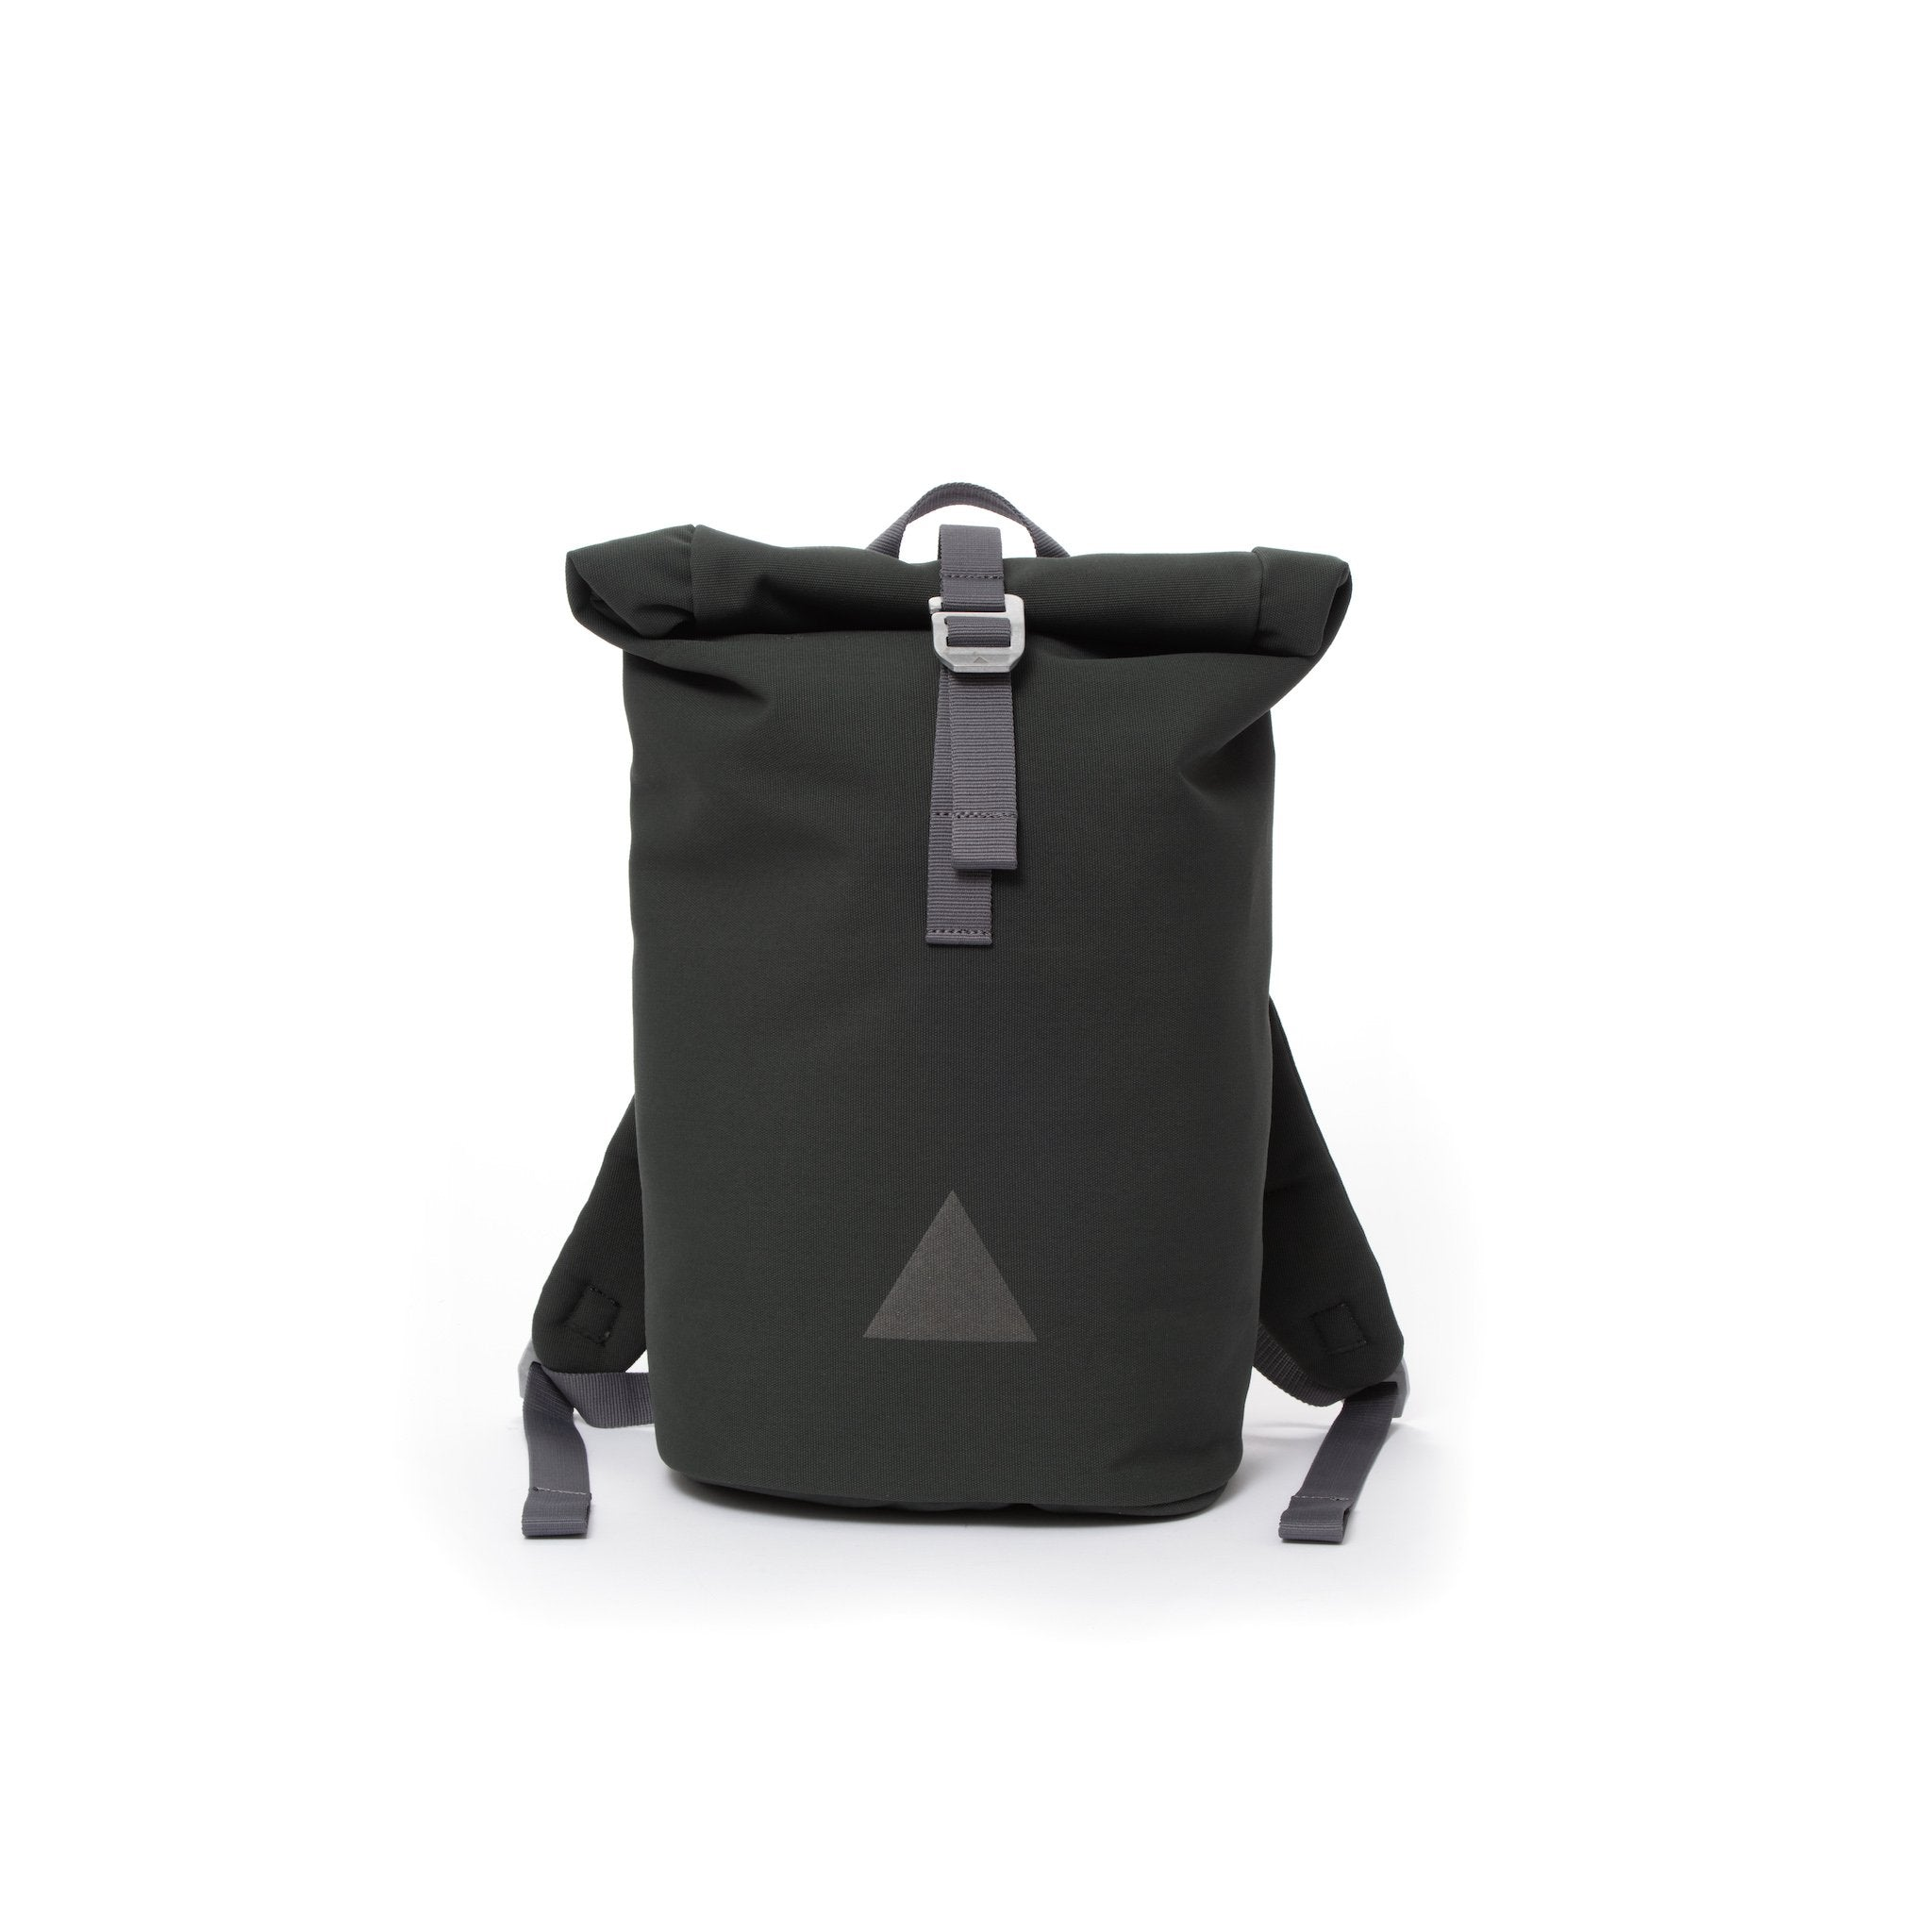 Grey recycled canvas women's rolltop backpack with triangle logo.